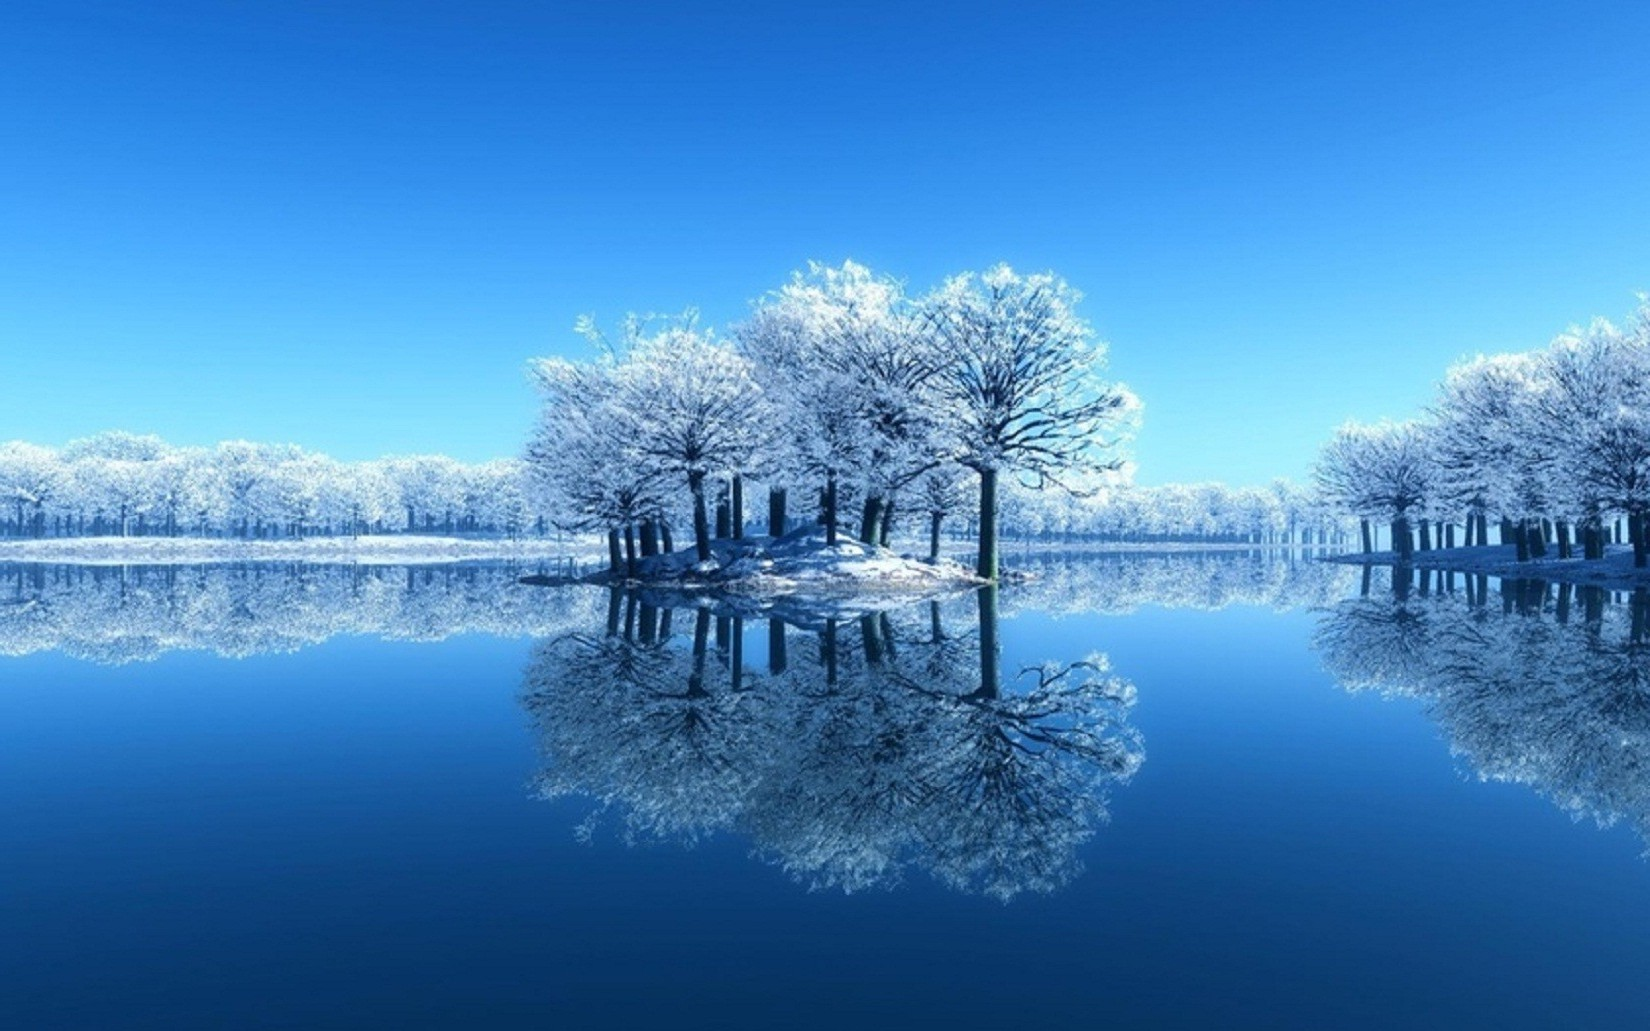 winter snow cold frost nature ice frozen wood water reflection landscape sky dawn tree lake season composure outdoors fair weather